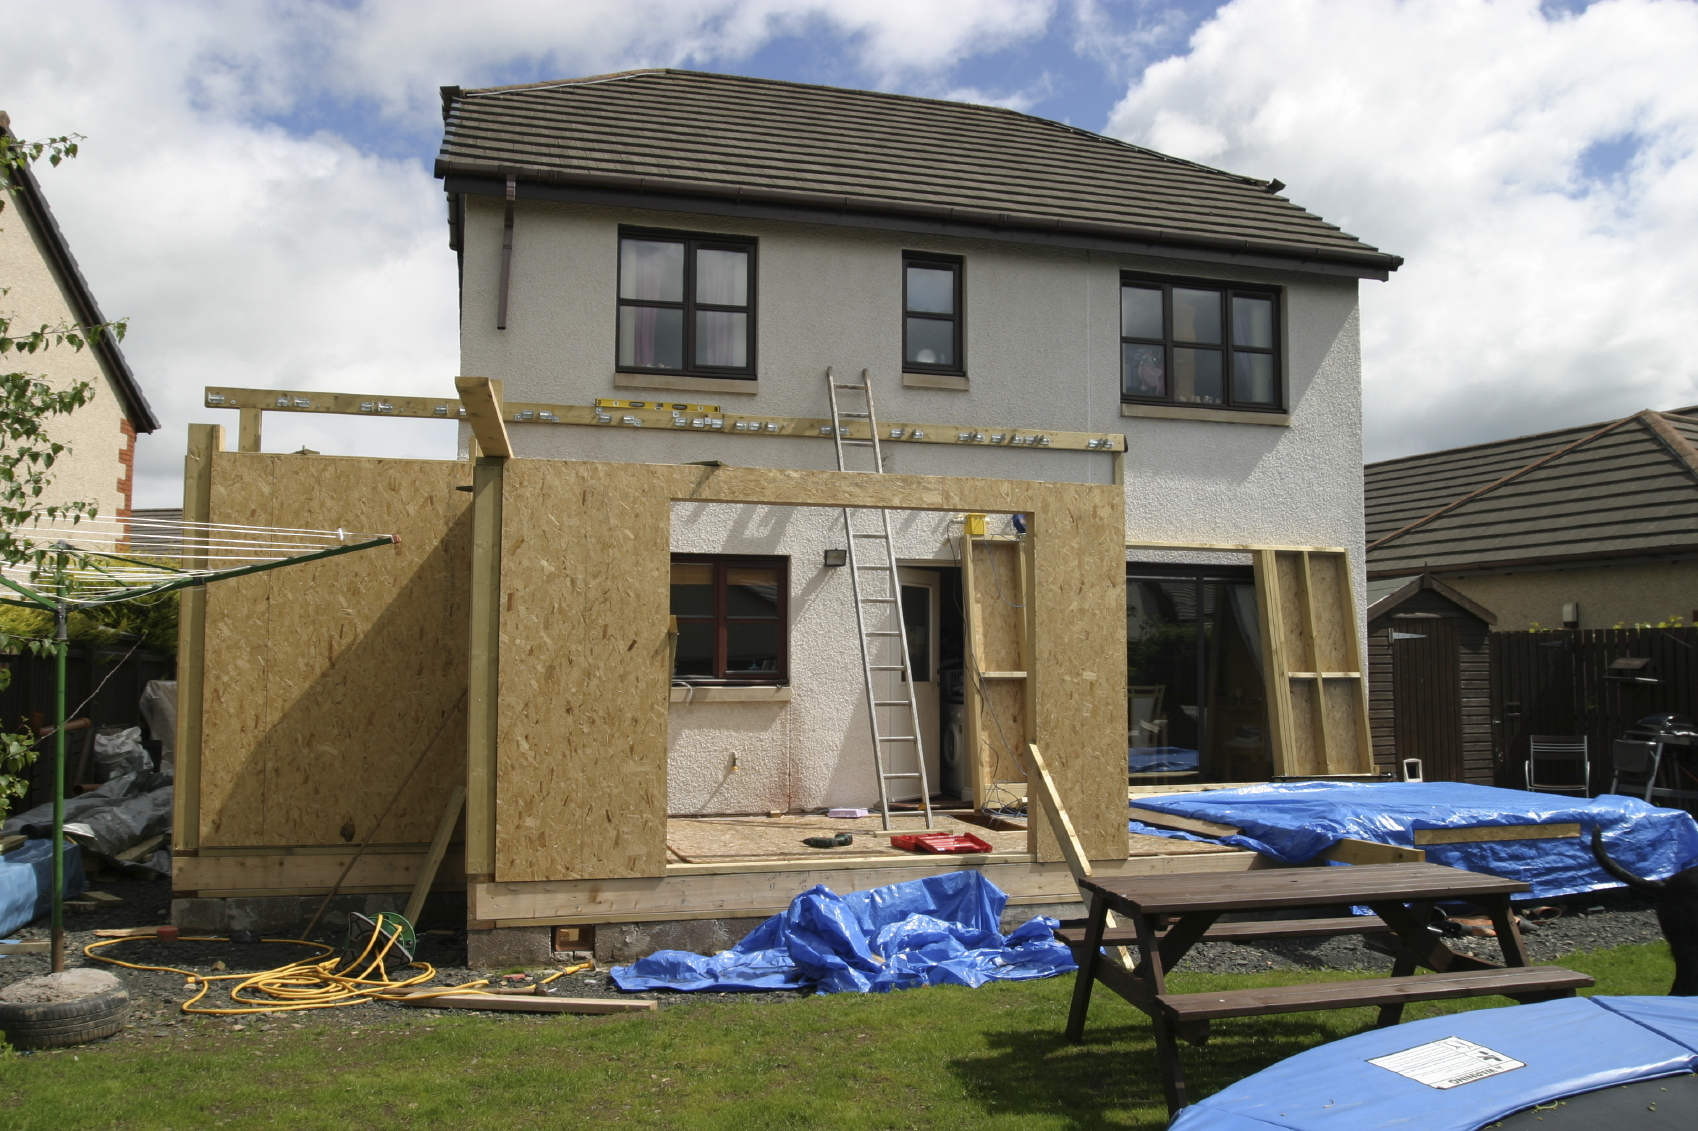 3 Bedroom Extension Cost Top 10 Home Addition Ideas Plus Their